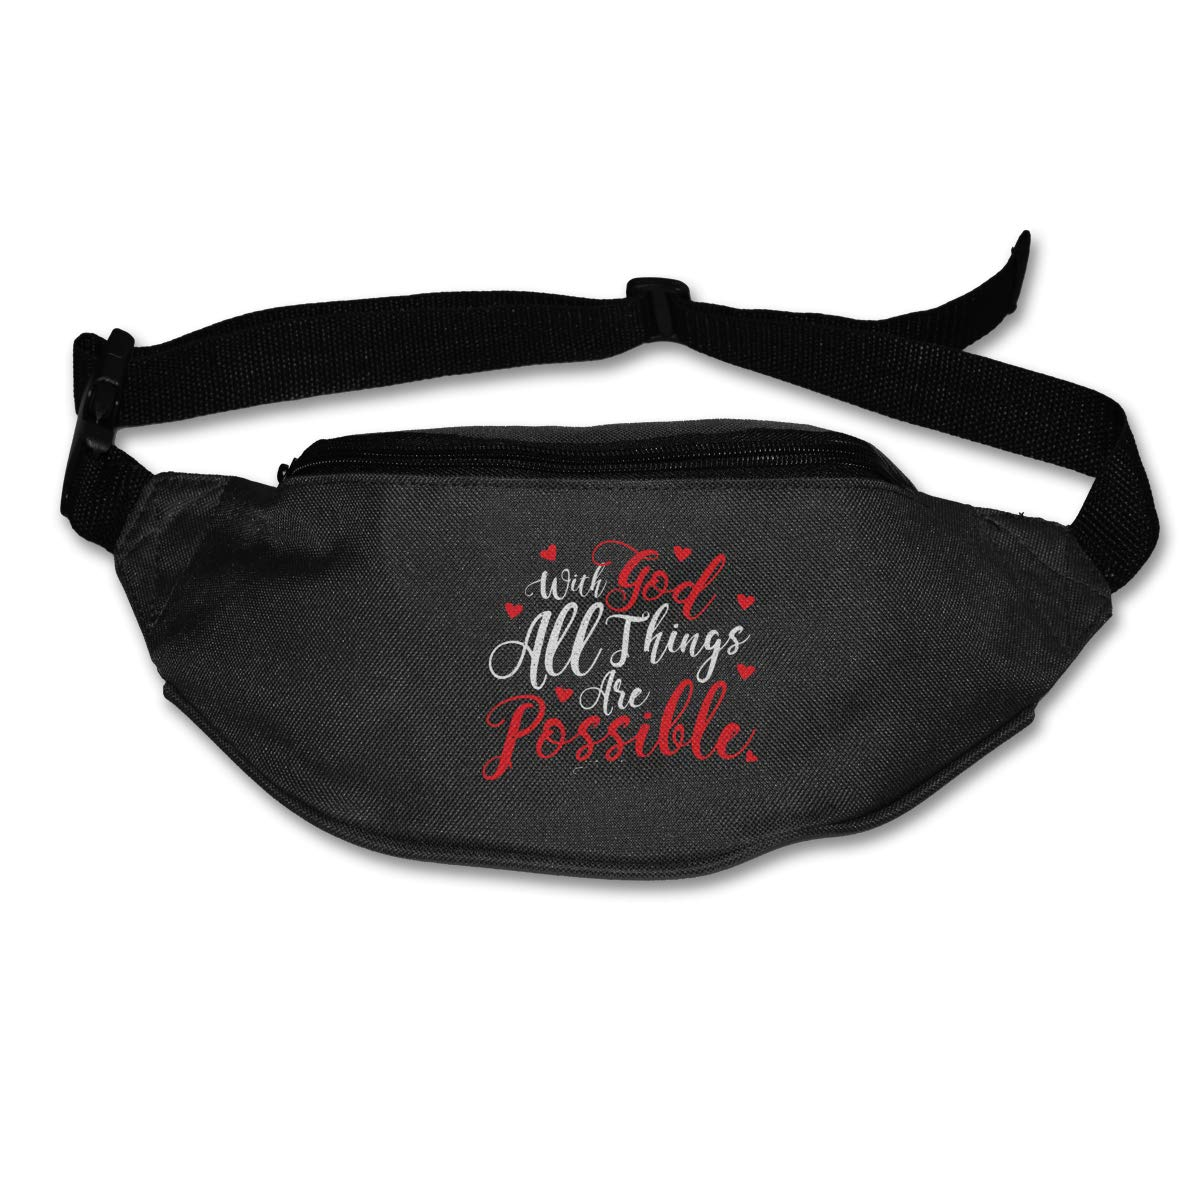 With God All Things Are Possible Sport Waist Bag Fanny Pack Adjustable For Run